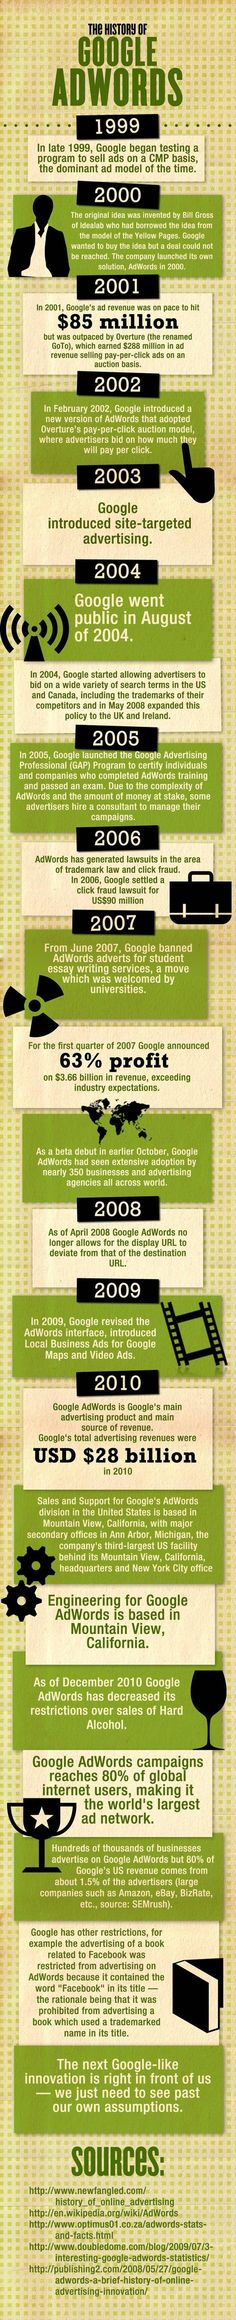 The History of Google Adwords Infographic. - mysmn.com